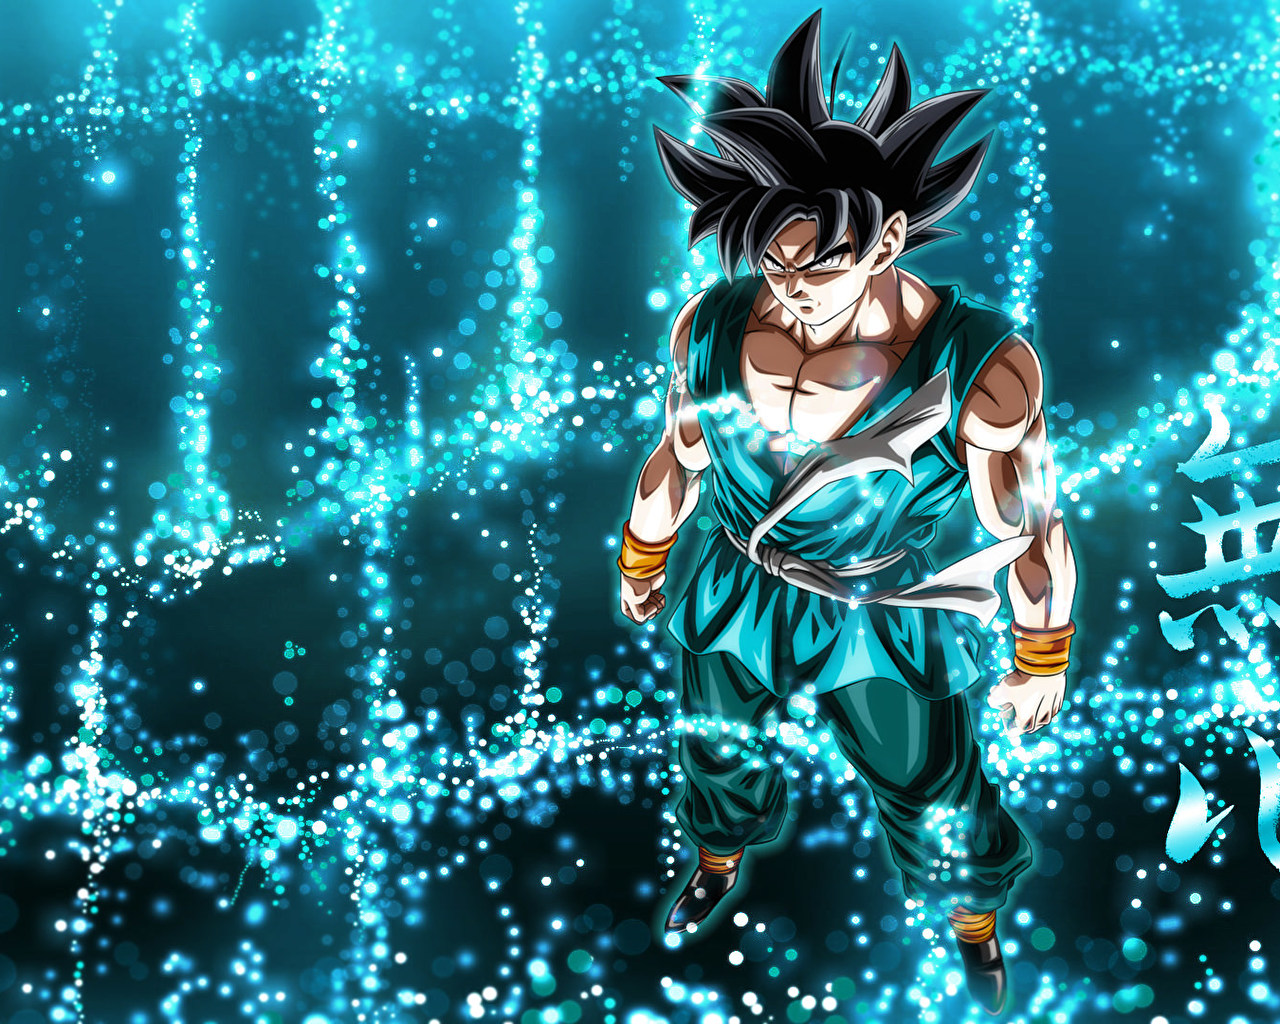 Dragon Ball Super Wallpaper Android: Dragon Ball Super Wallpaper : Wallpapers